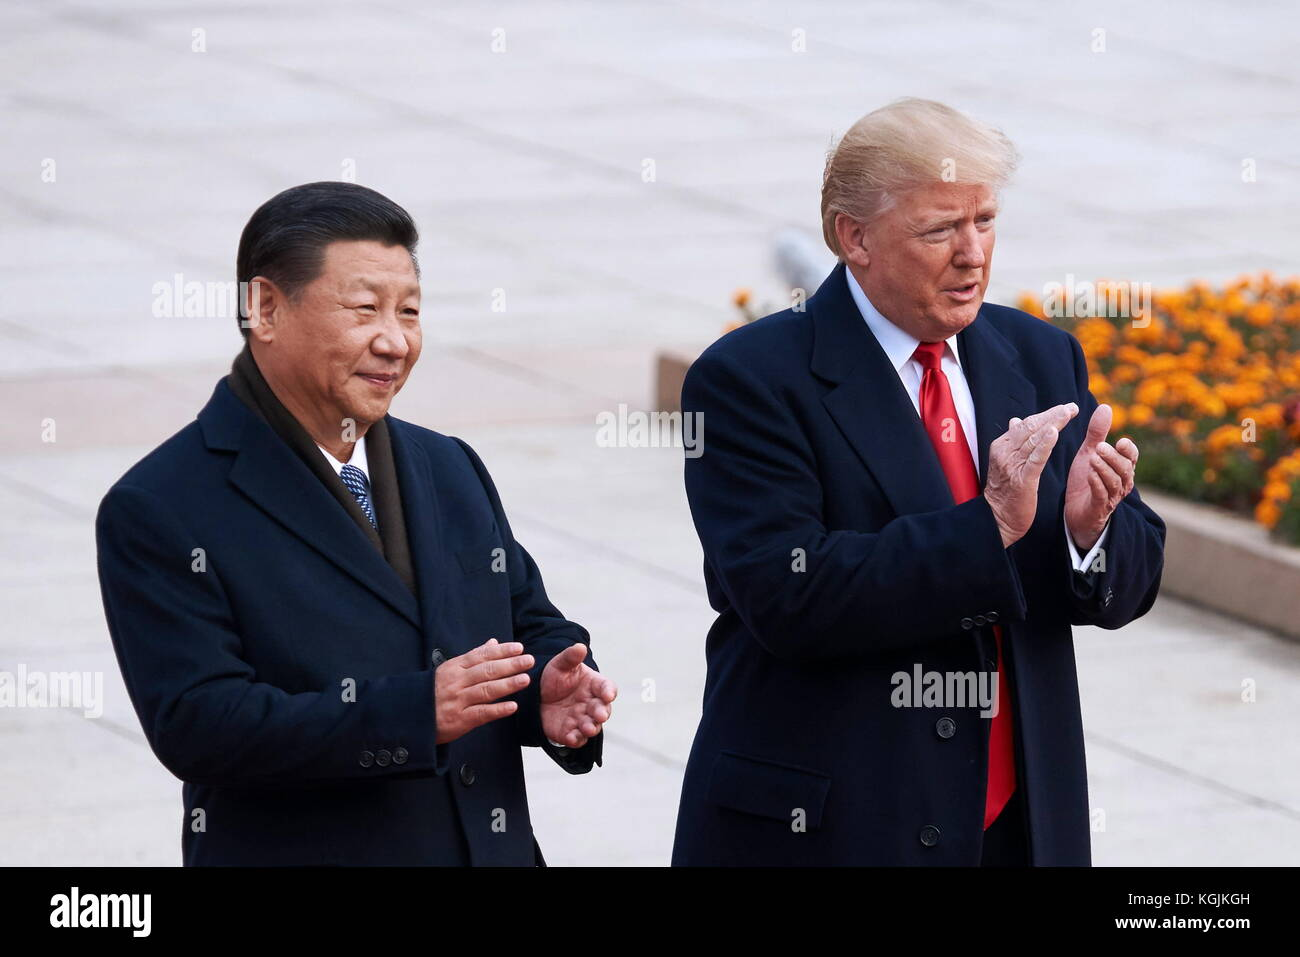 Beijing, China. 9th Nov, 2017. China's President Xi Jinping (L) and US President Donald Trump during a meeting - Stock Image